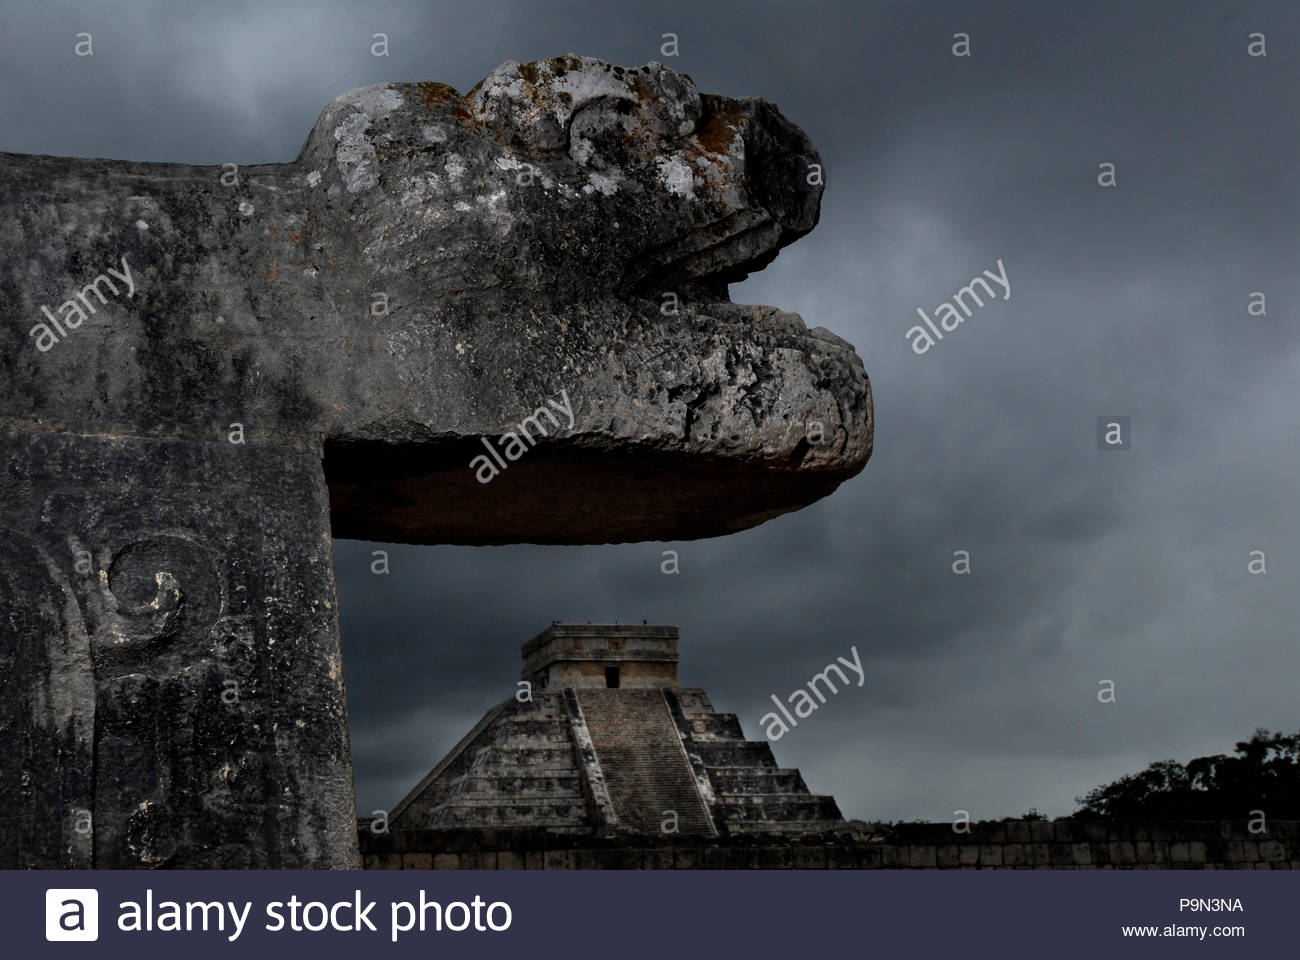 El Castillo and a stone carving of a mythological beast. - Stock Image